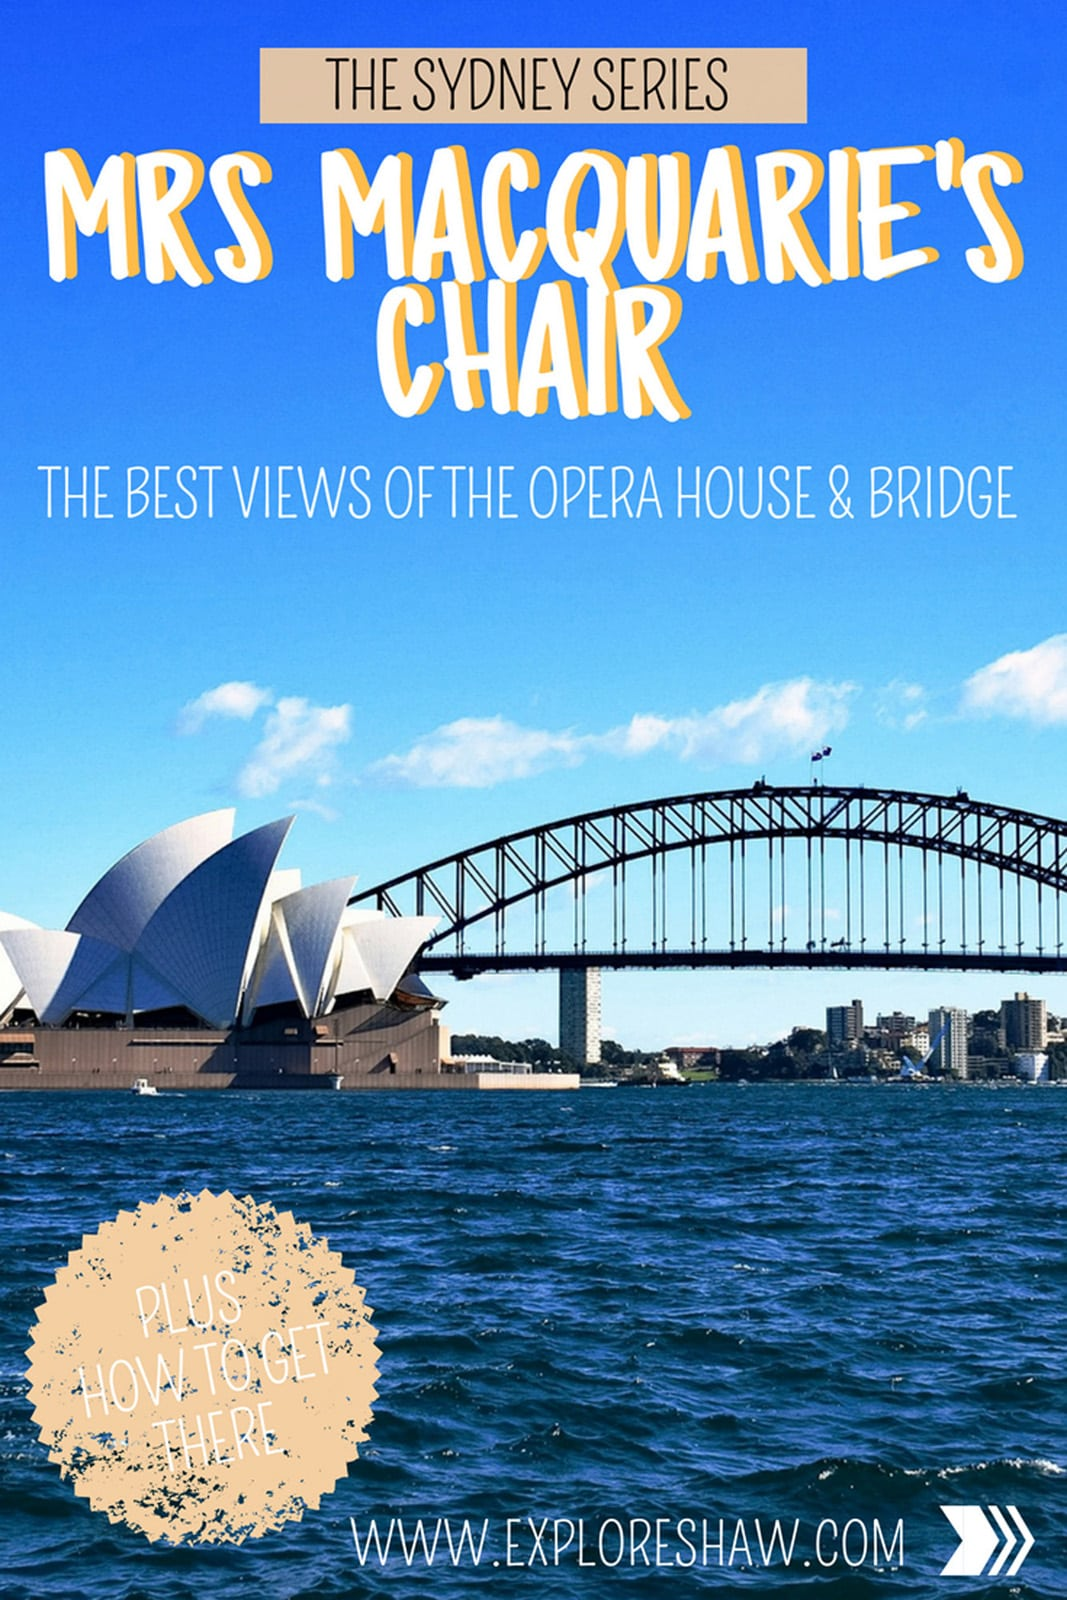 For the best and most iconic view of both Sydney Opera House and the Sydney Harbour Bridge, head to Mrs Macquarie's Chair.